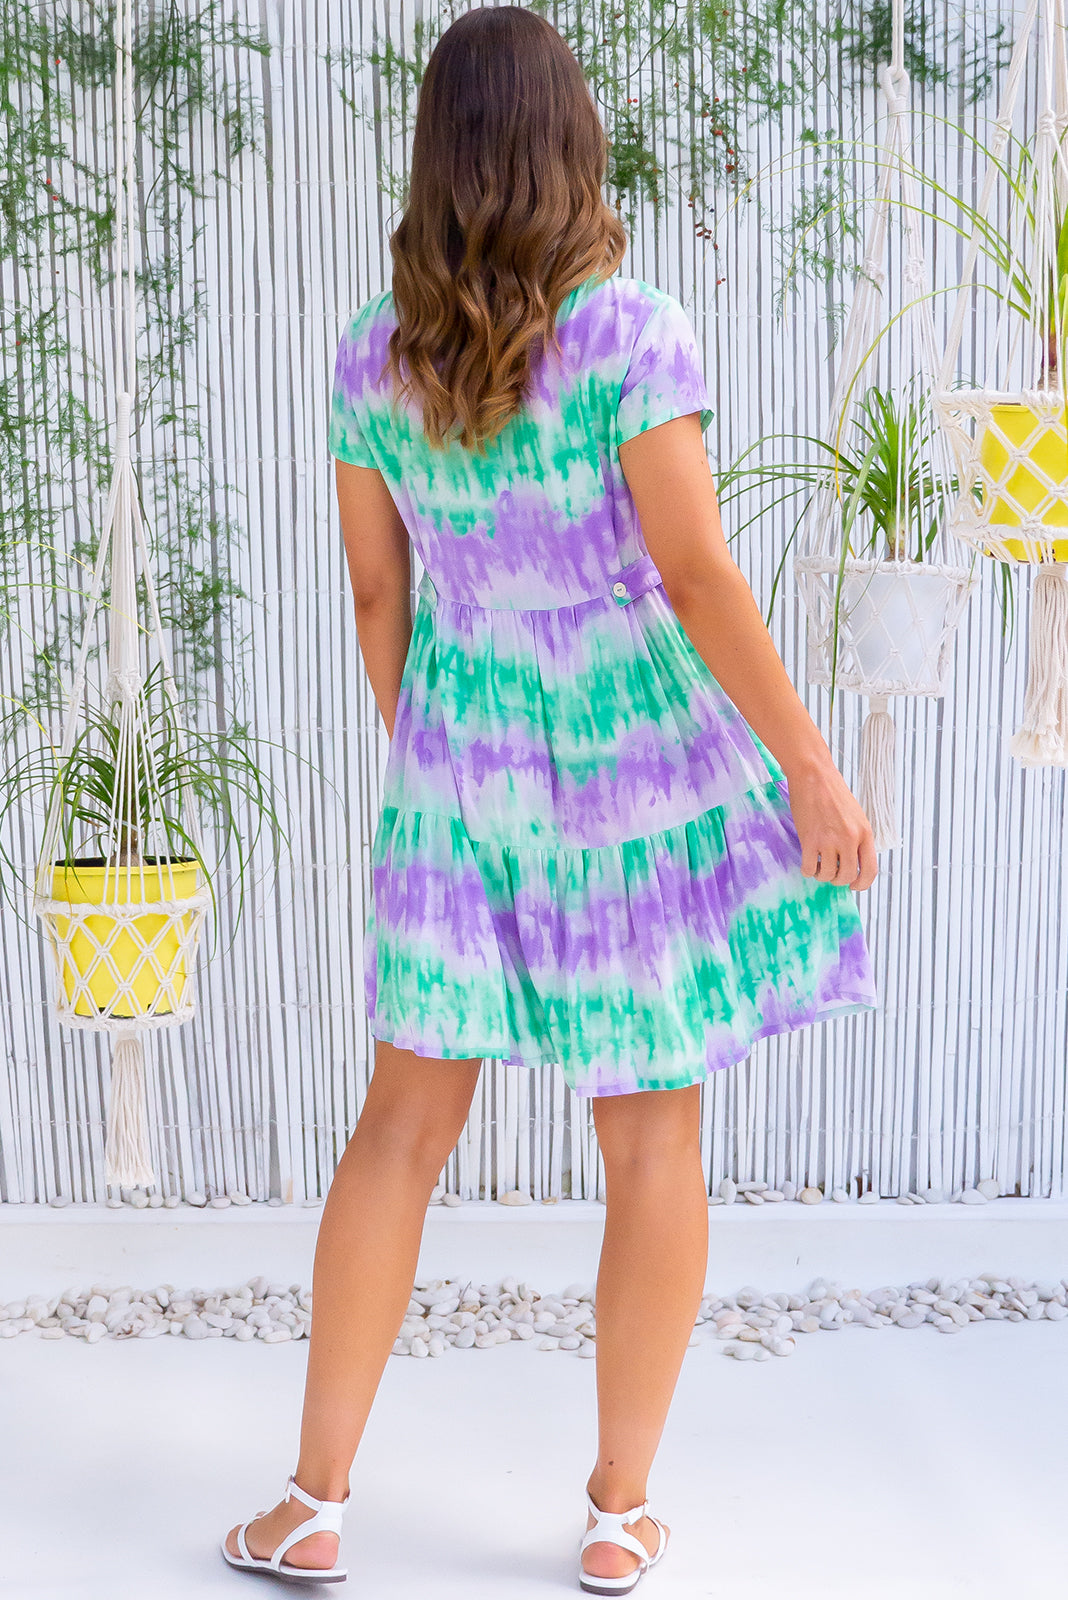 The Georgie Tie Dye Fun Dress features functional button front, cap sleeves, adjustable side tabs, side pockets, frilled hem and 100% rayon in sherbet tones of purple and green tie dye.